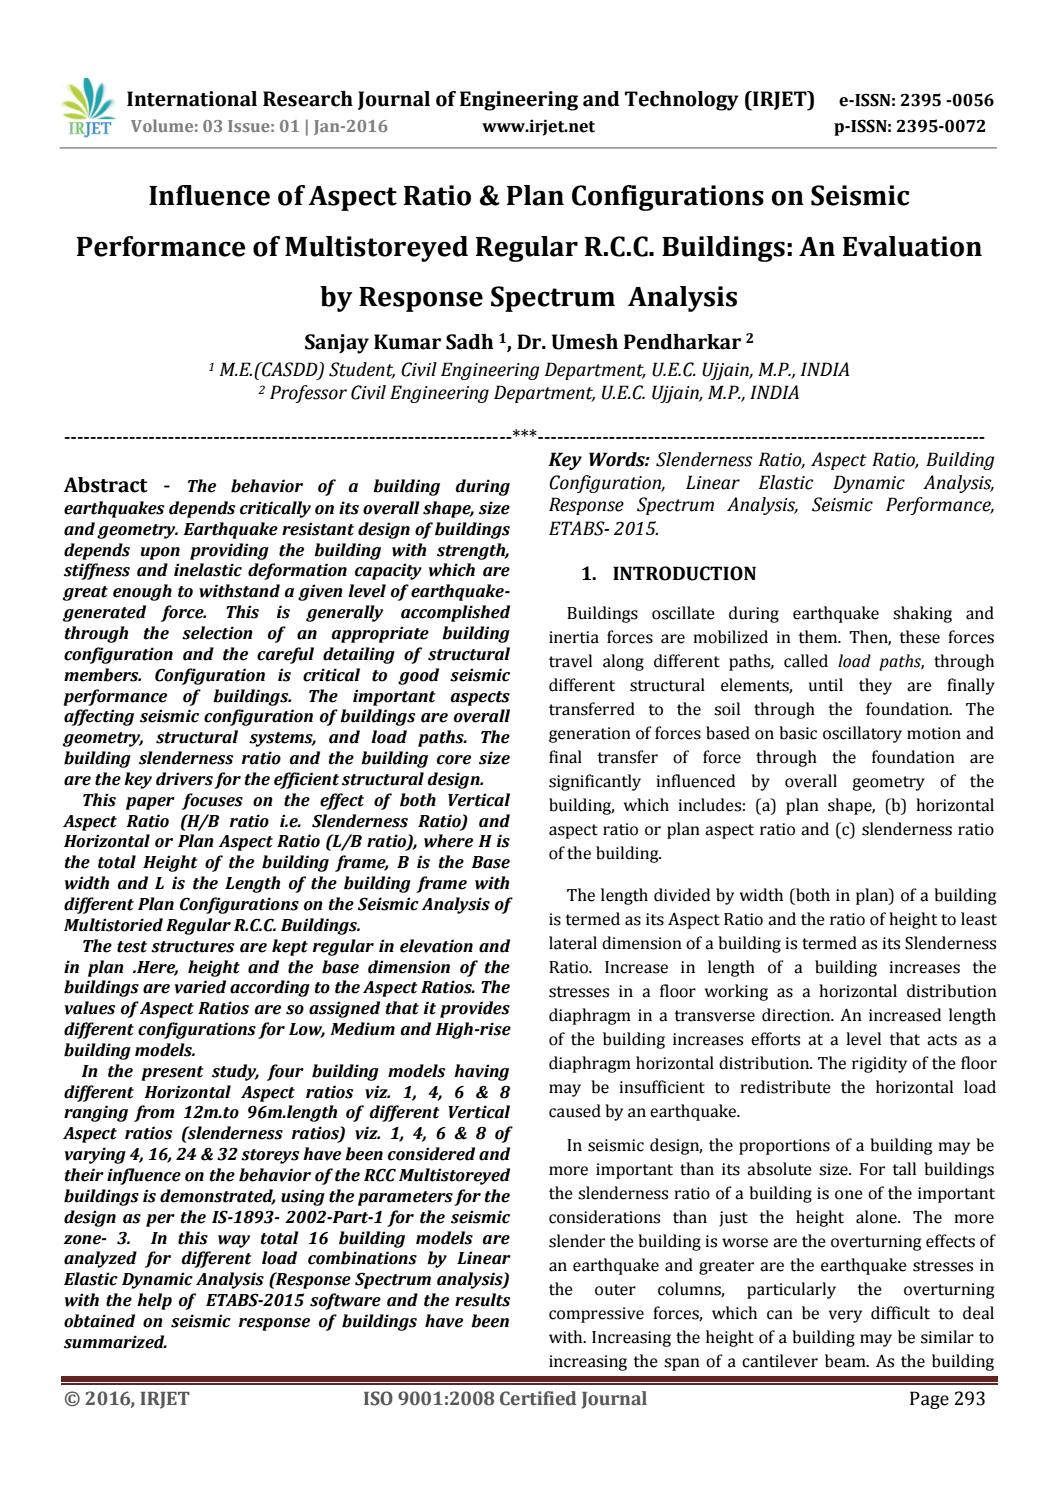 Influence of Aspect Ratio & Plan Configurations on Seismic Performance of  Multistoreyed Regular R C